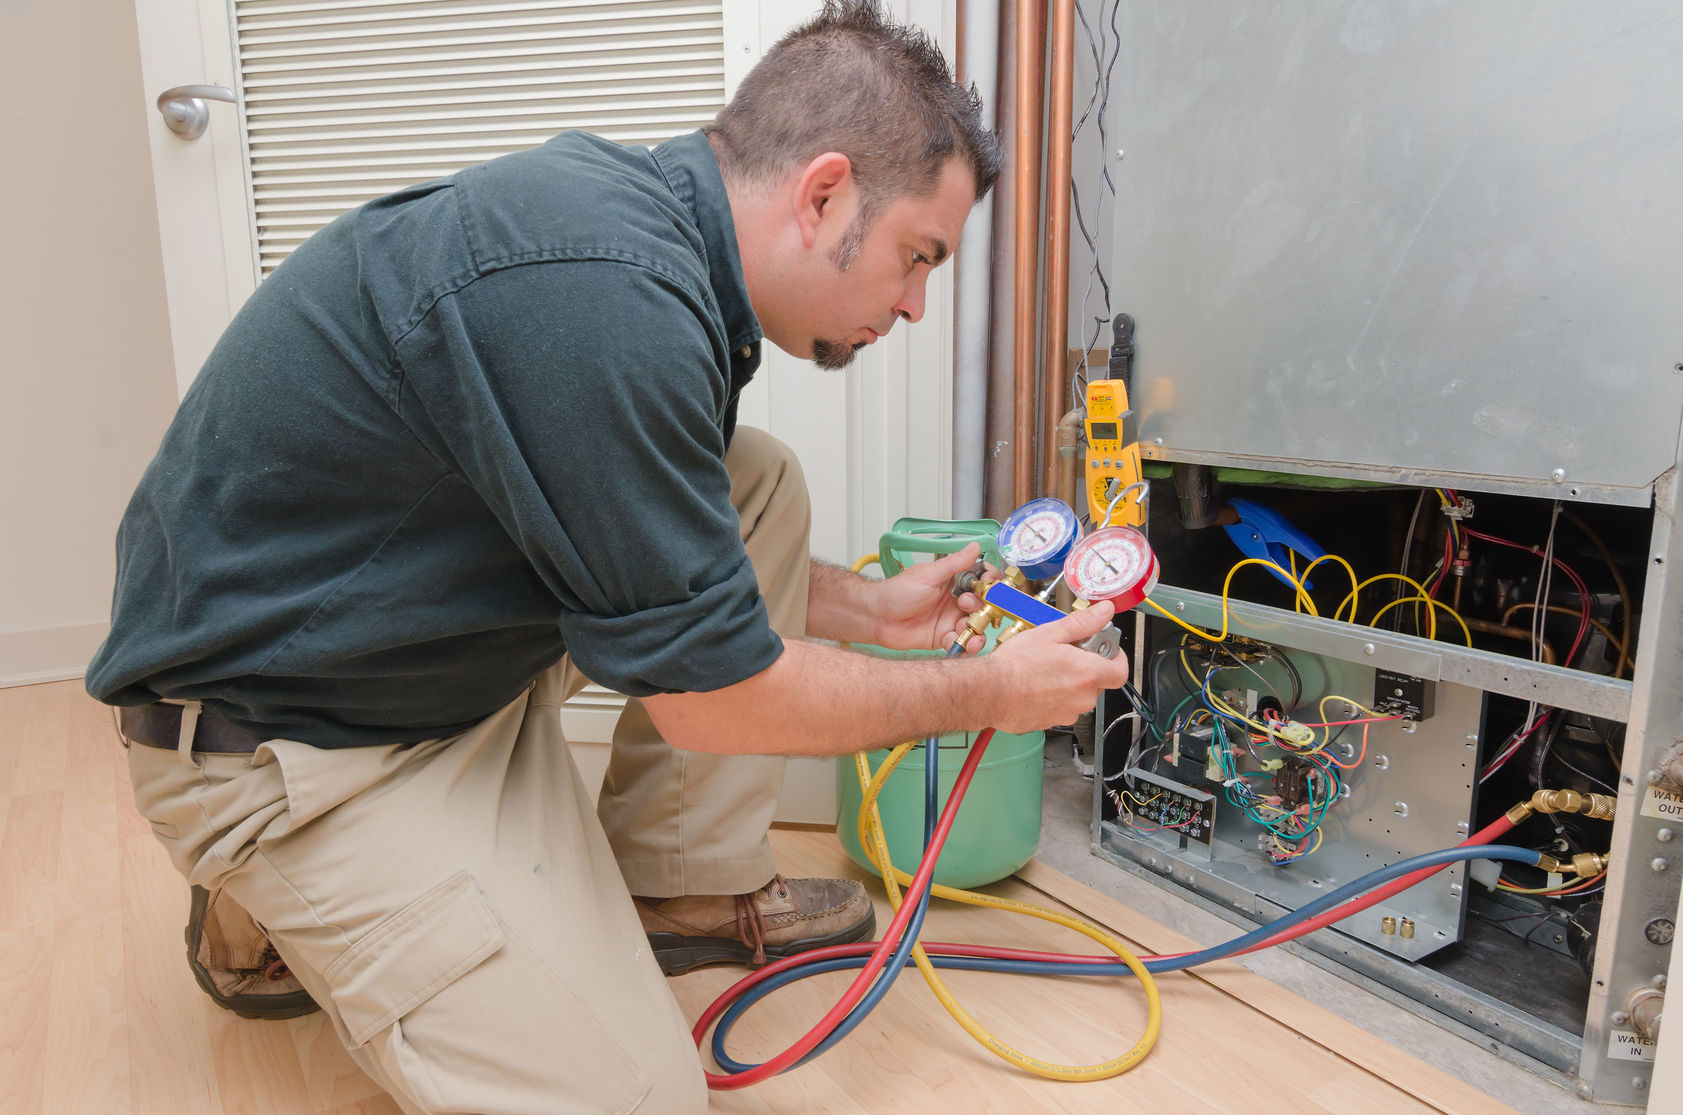 Commercial Hvac Service Installation Ac Repair Wiring When You Call Blue Ridge Heating Air Can Be Sure That Are Reaching An Professional Who Has The Expertise And Experience Required To Provide